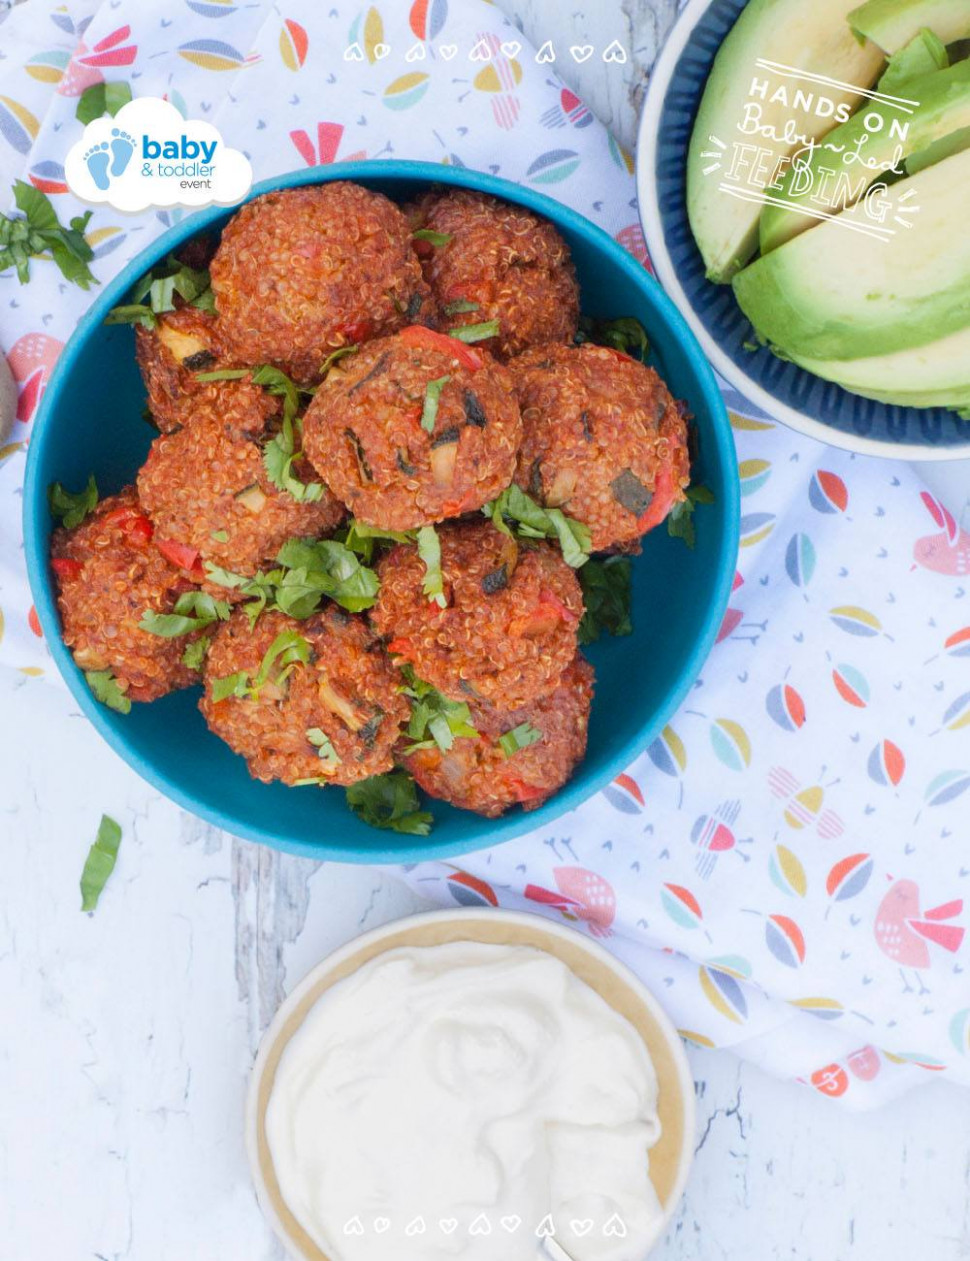 Baby Led Weaning Mexican Quinoa Bites - Recipes Using Baby Food Meat